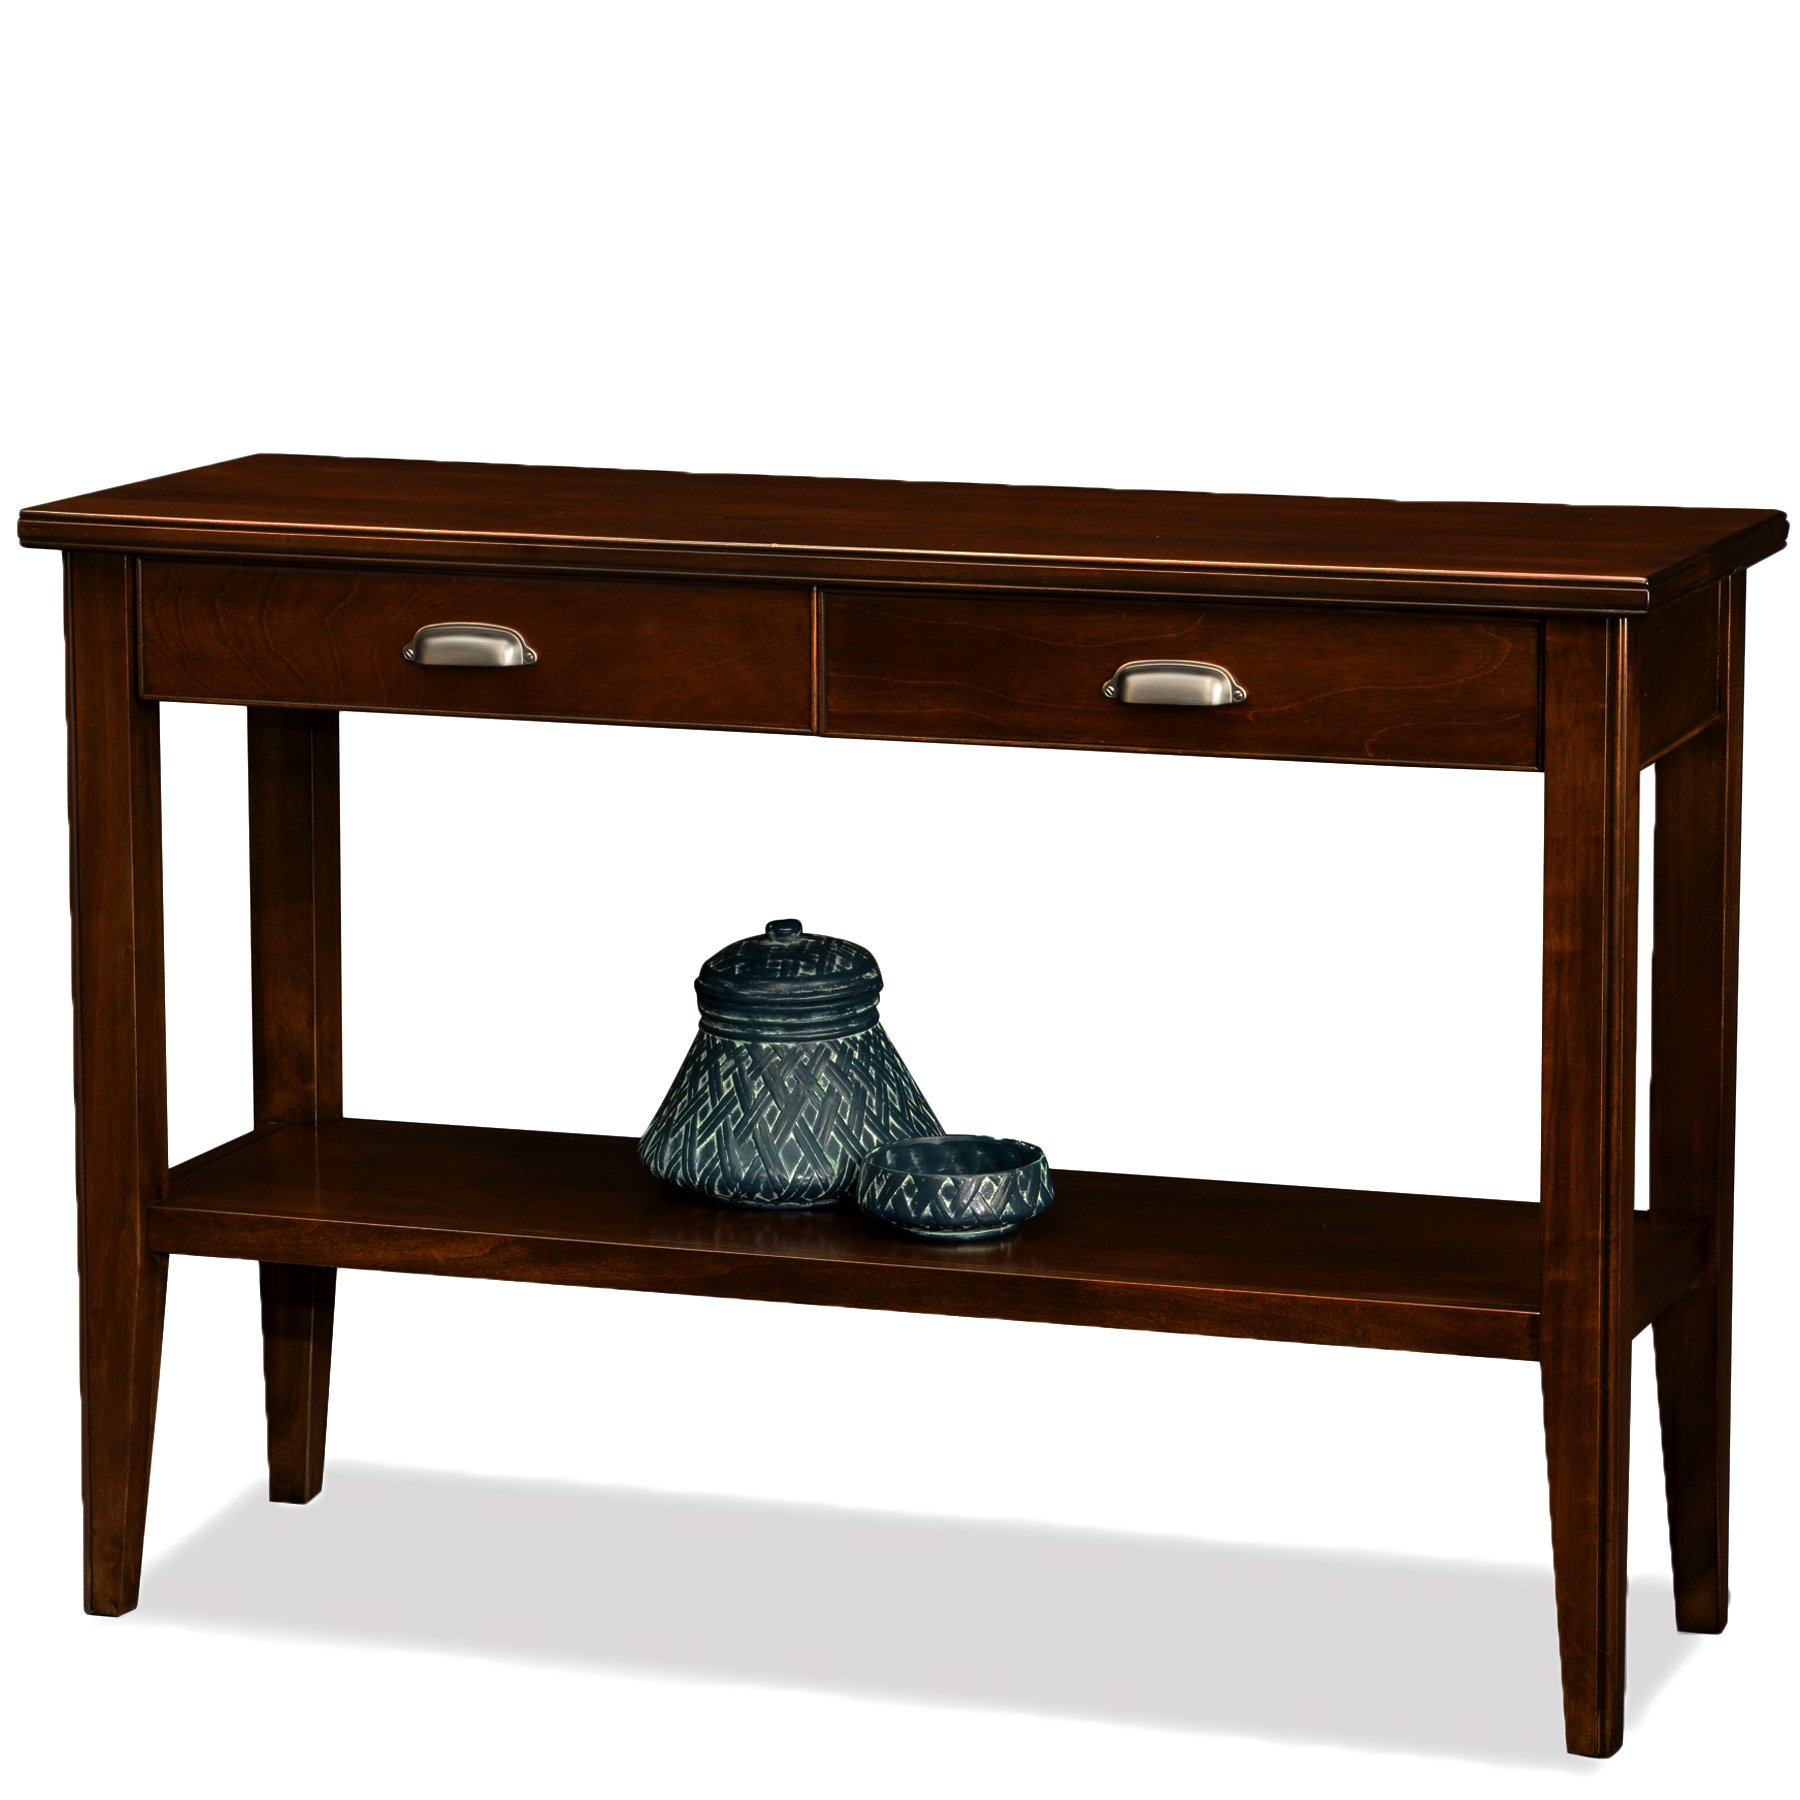 Leick Laurent 2-Drawer Hall Console Table by Leick Furniture